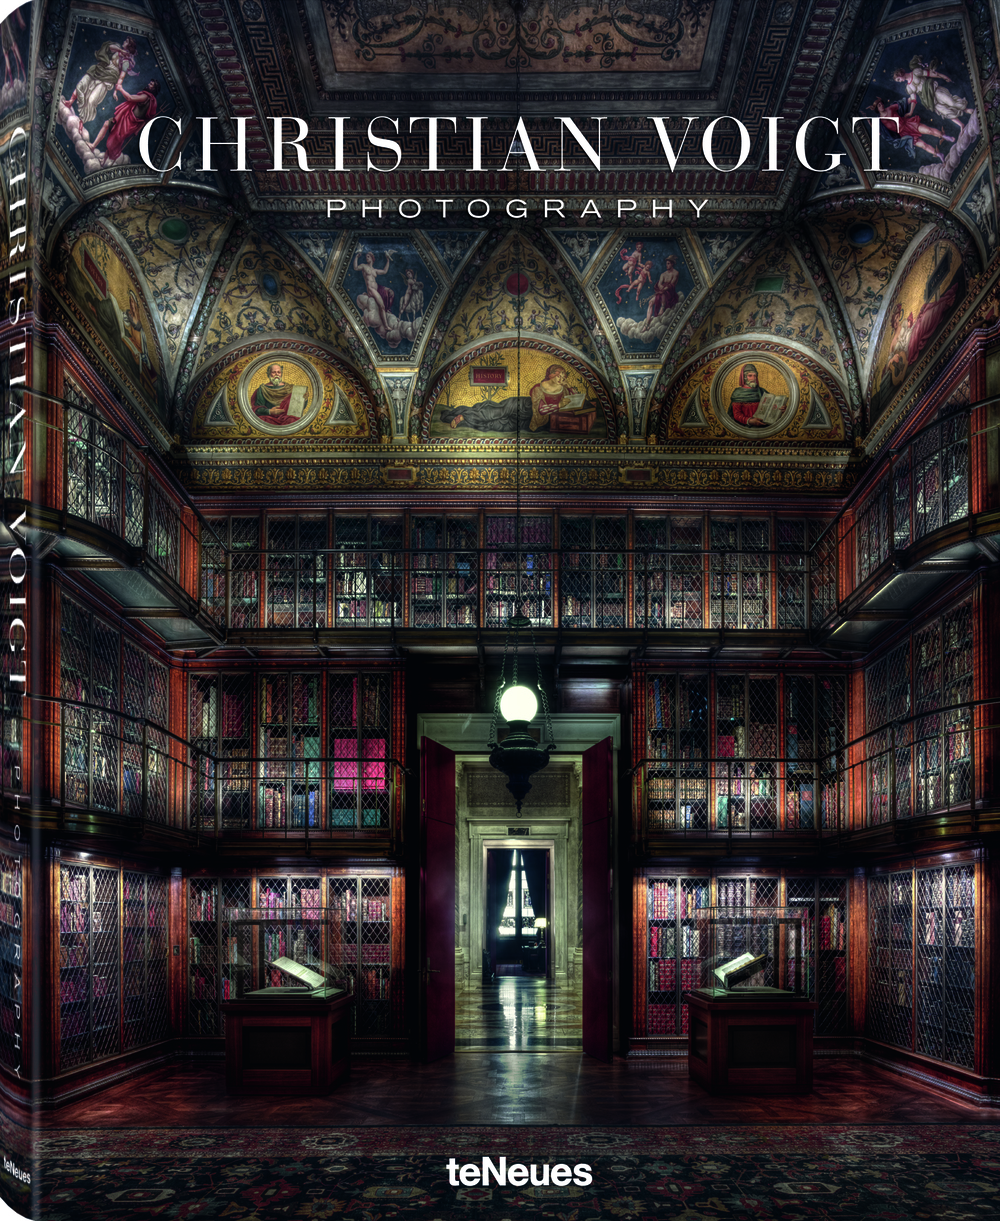 © Christian Voigt Photography, to be published by teNeues in August 2015, € 79,90 www.teneues.com. The Morgan Library III, New York, USA, 2015, Photo © 2015 Christian Voigt Collection & Photography GmbH. All rights reserved.